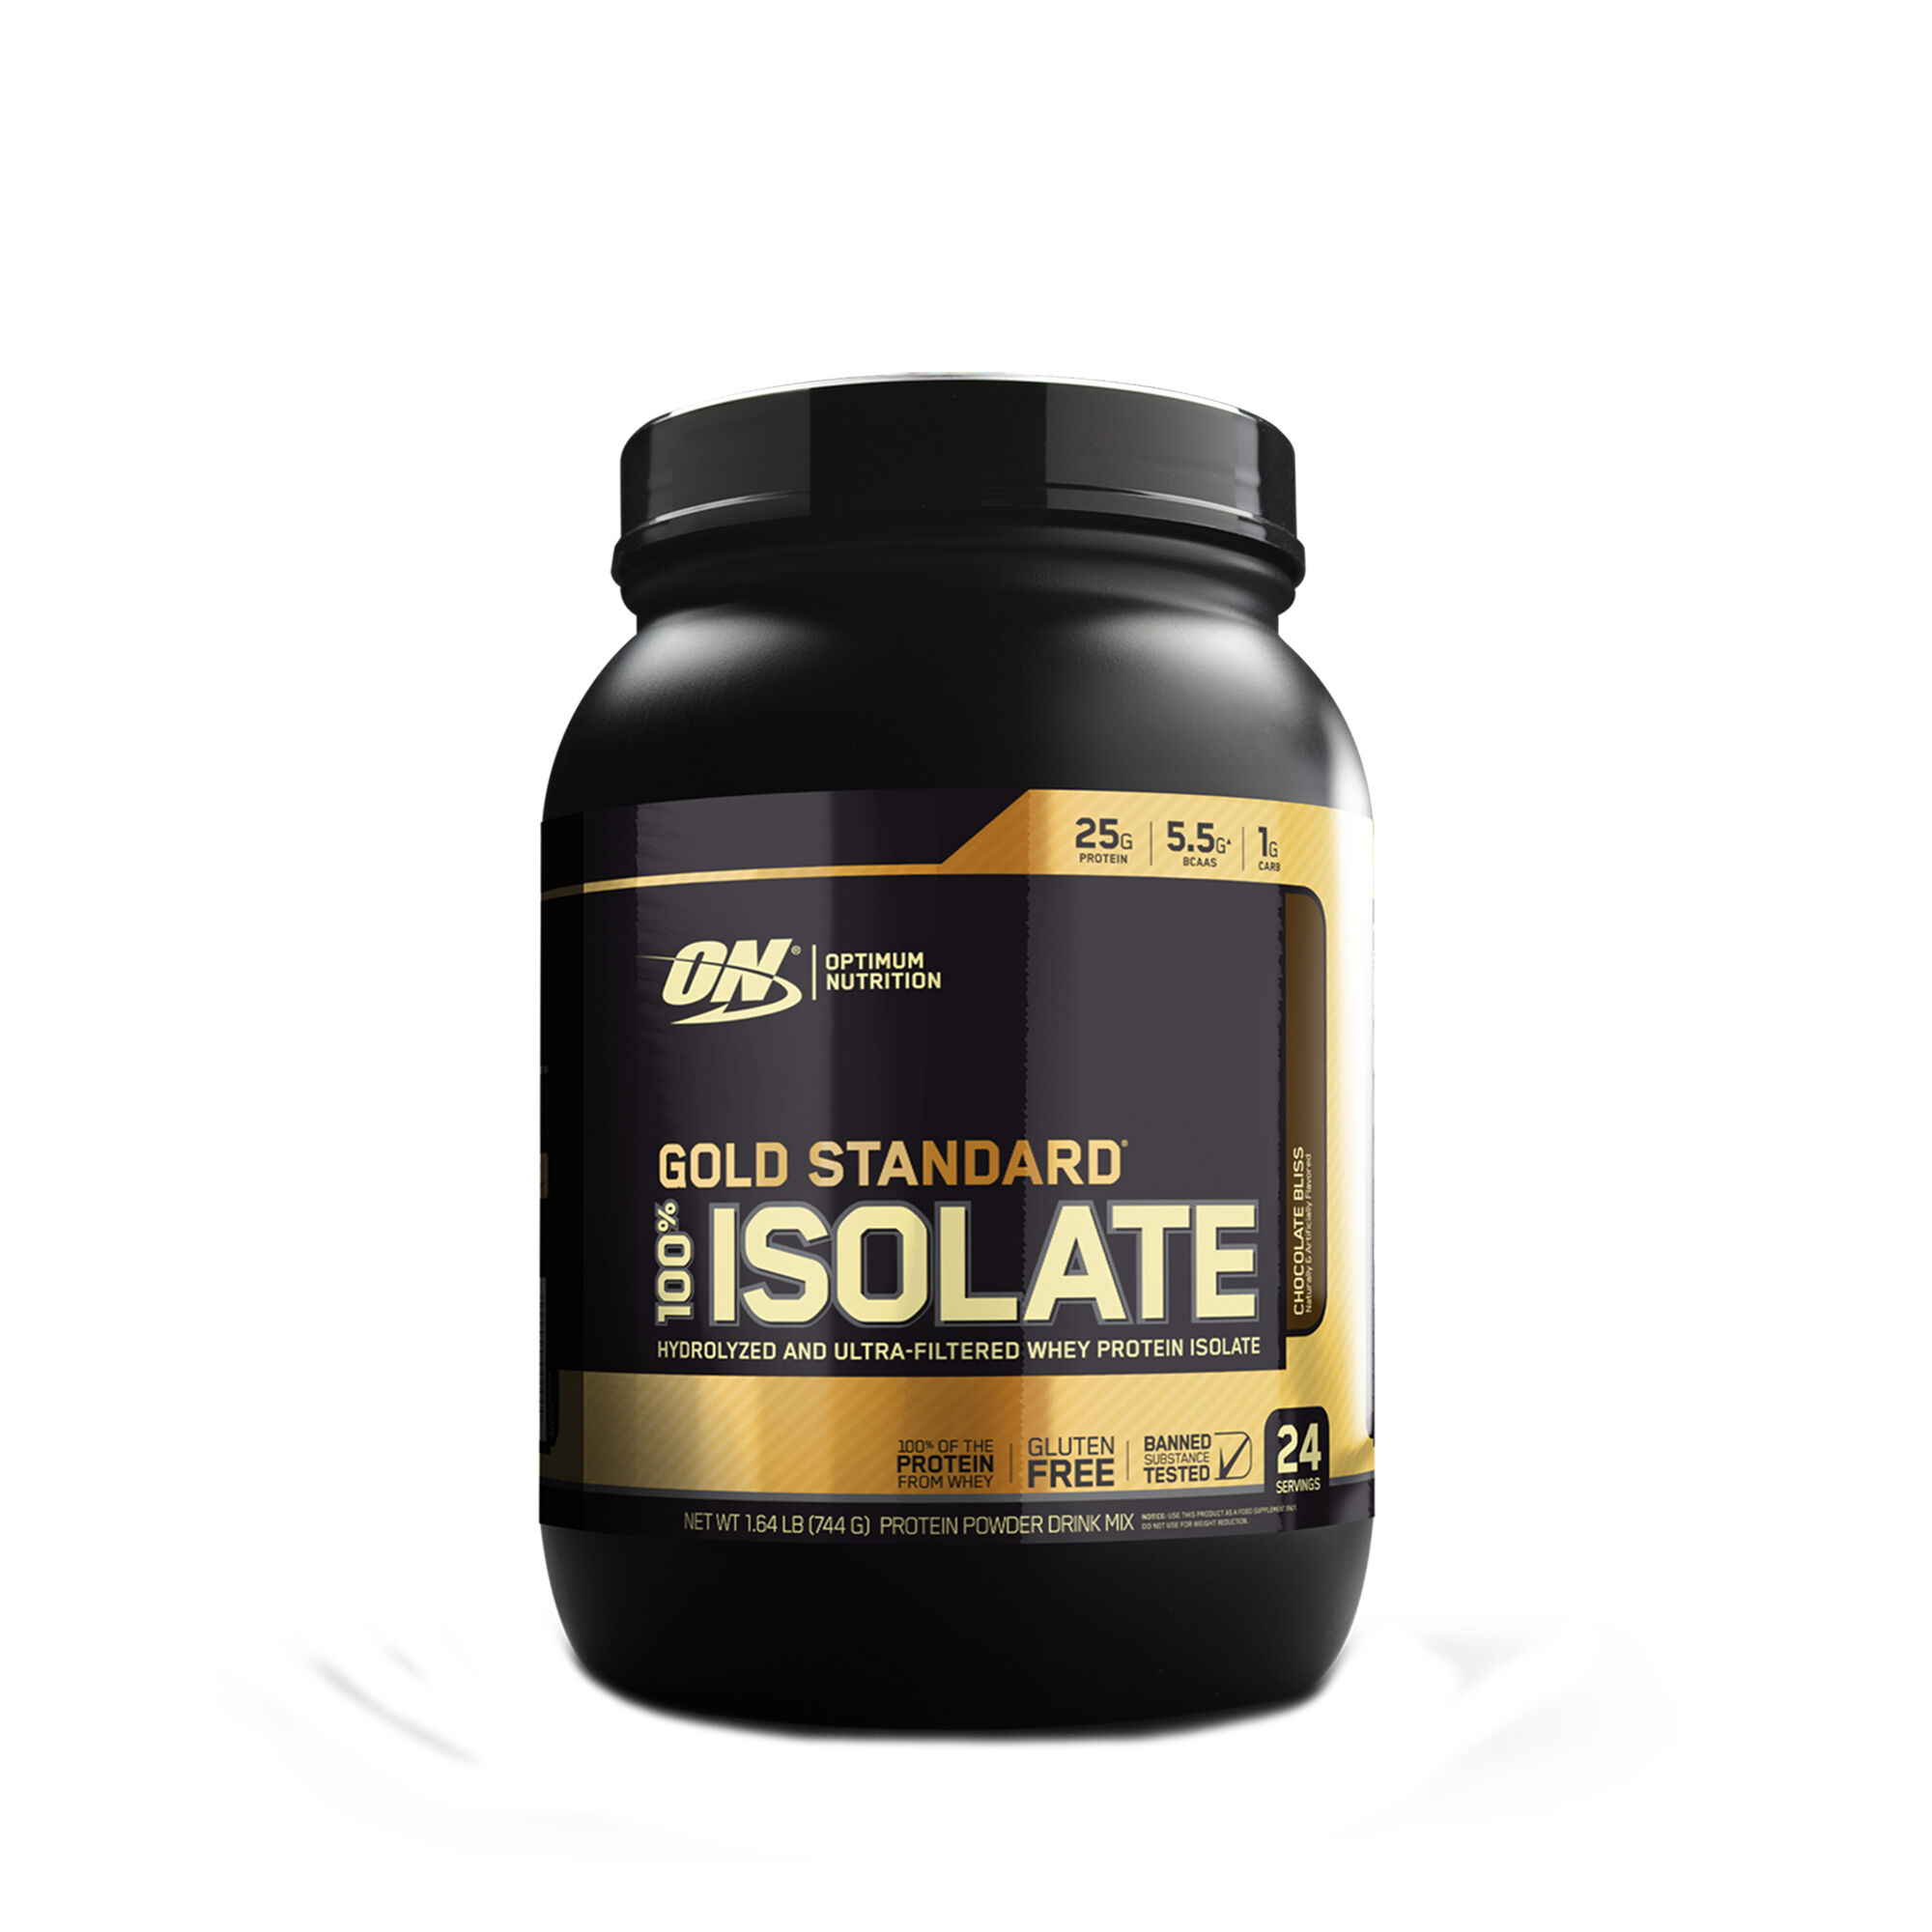 Optimum Nutrition Gold Standard 100 Isolate Chocolate Bliss Gnc